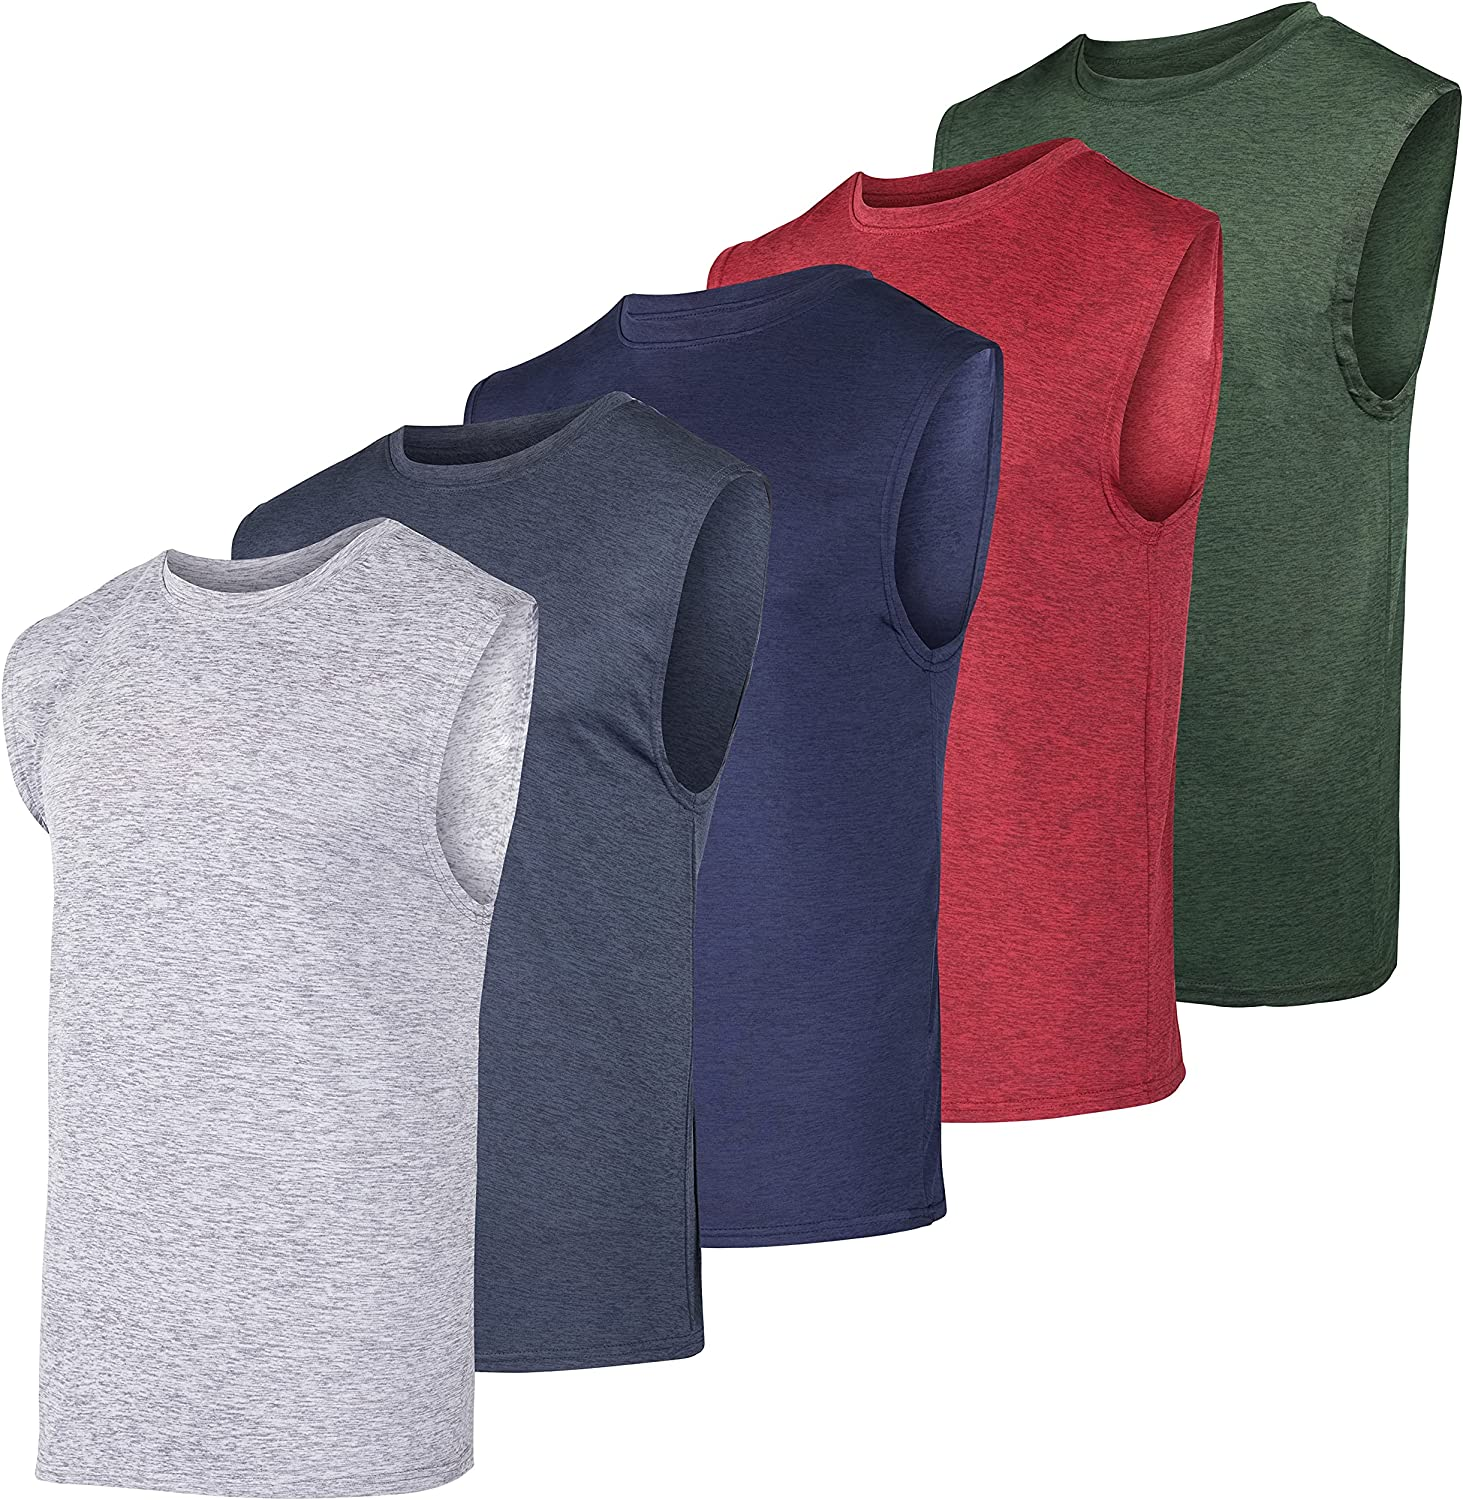 5 Pack: Men's Ranking TOP1 Dry-Fit Active Athletic Max 72% OFF Top Workout Tank Tech -